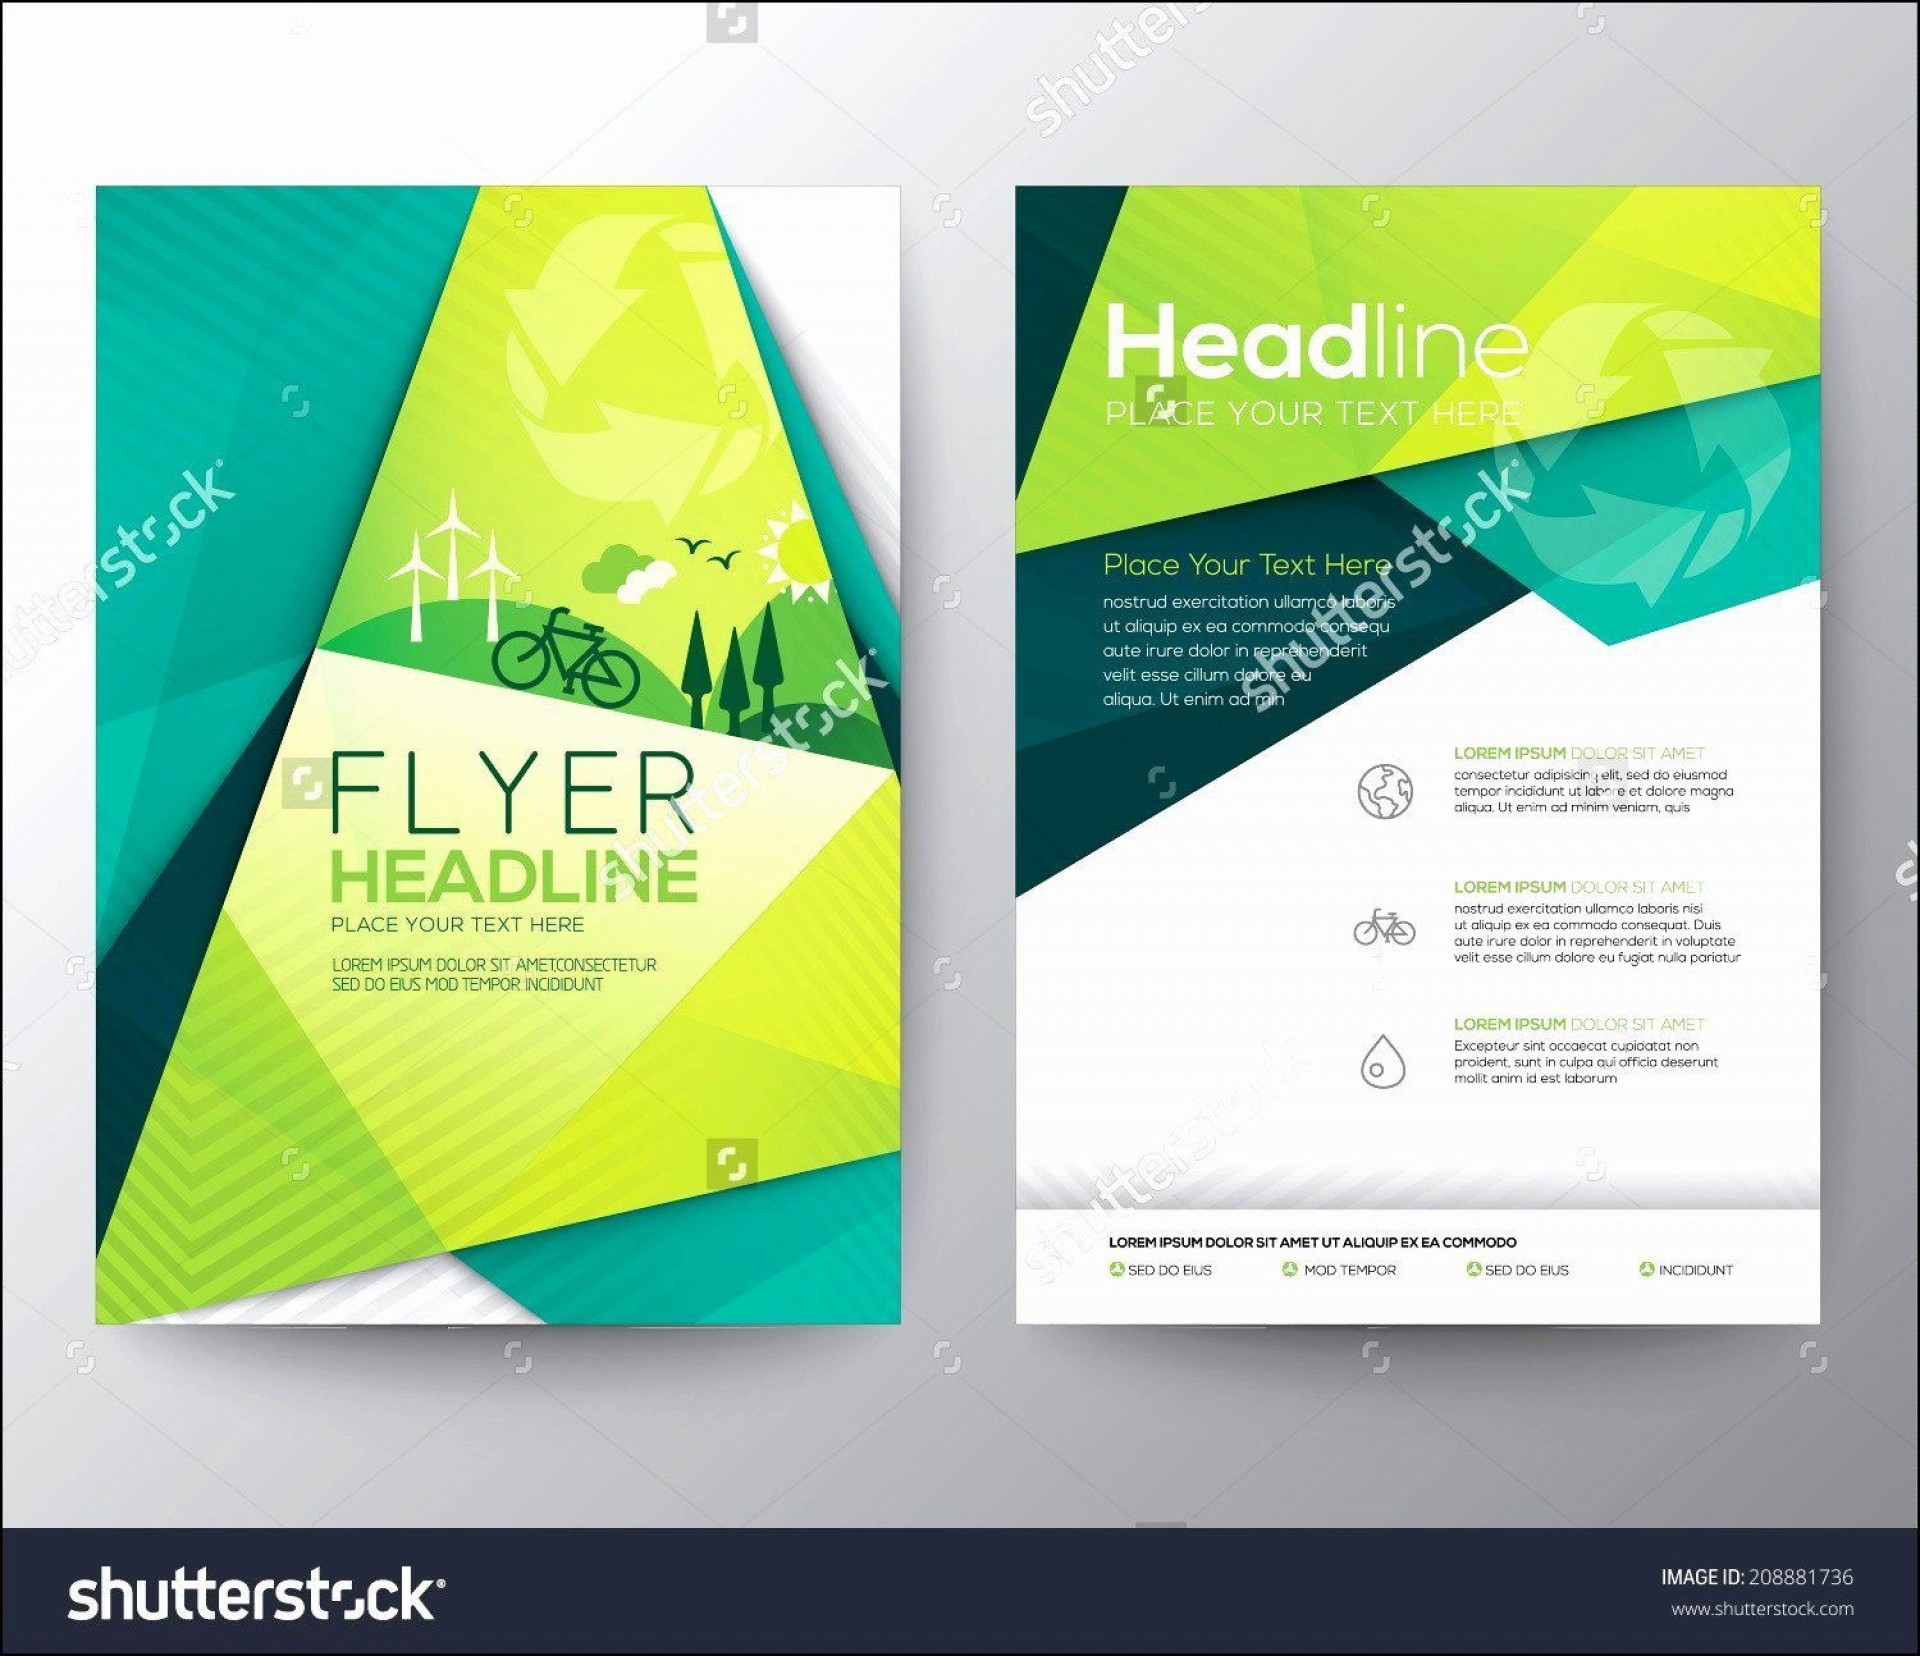 001 Impressive Photoshop Brochure Design Template Free Download Photo 1920